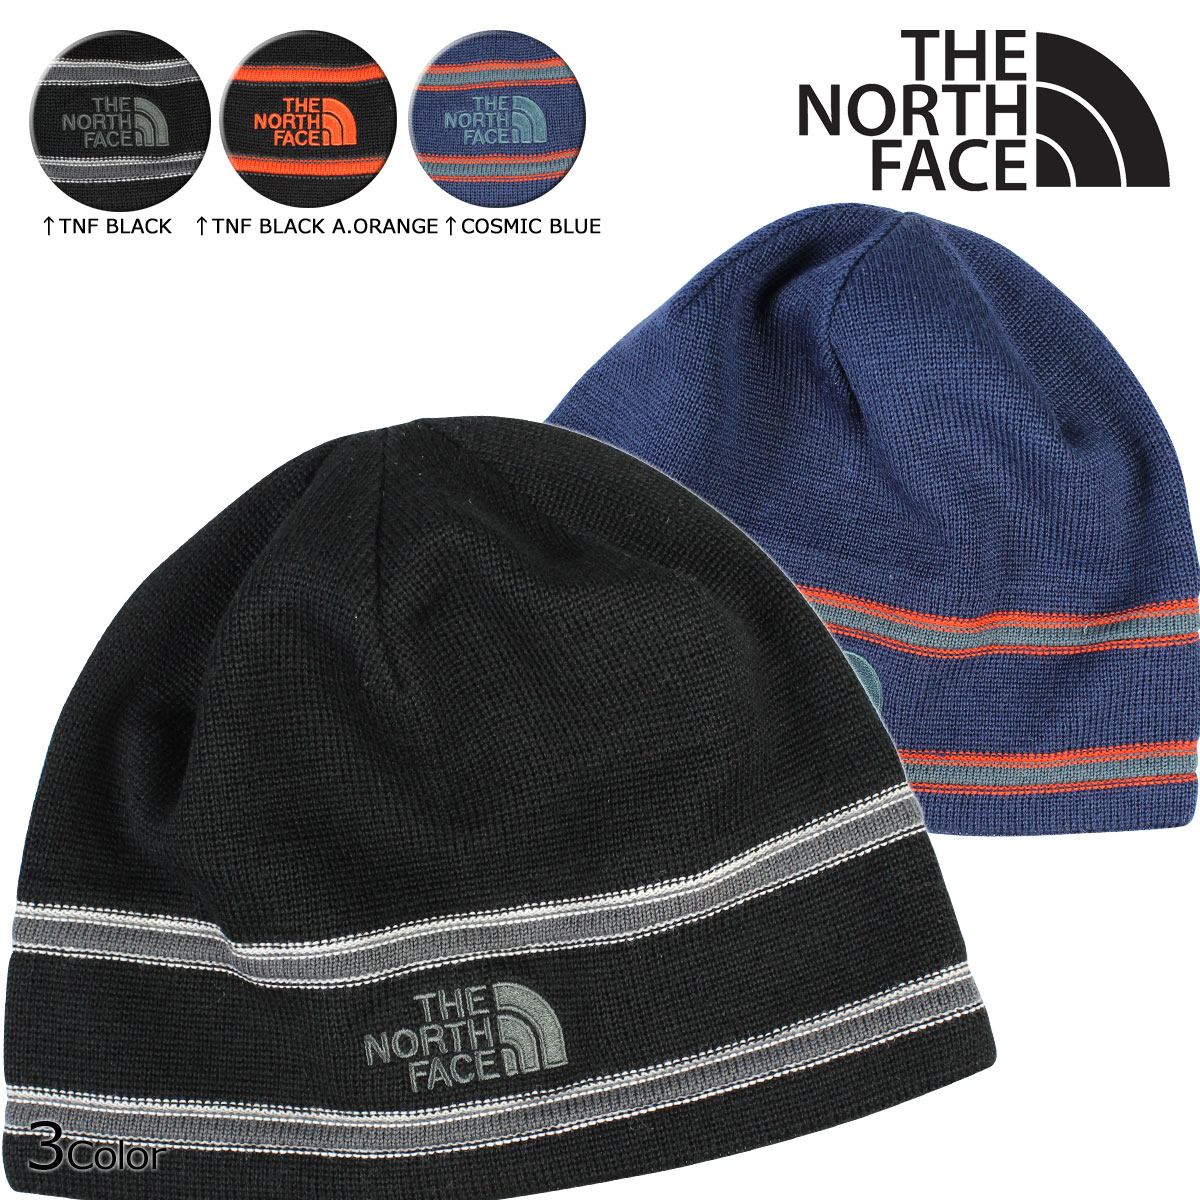 ALLSPORTS   laquo Soon raquo   laquo 10 7 days stock raquo  north face THE NORTH  FACE mens ladies knit hat Beanie knit Cap A6V9 3 color LOGO BEANIE  10 7 ... 51a8f0d390e